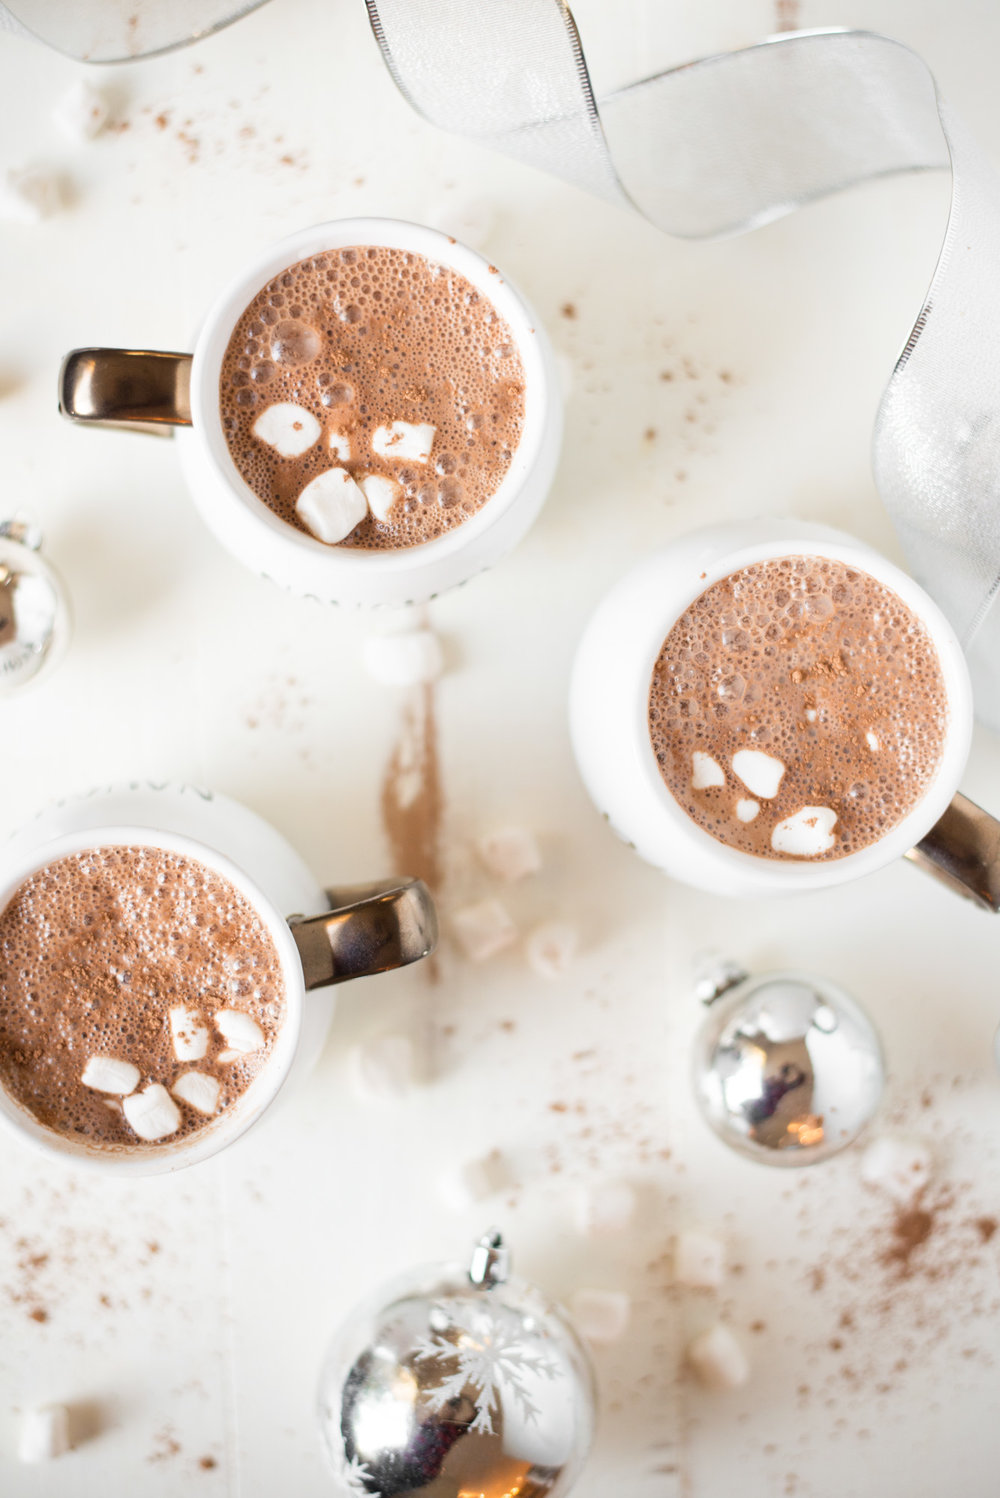 Skip the processed packets of hot cocoa and make your own at home with 3 simple ingredients. Warm, cozy, delicious, and completely dairy-free + naturally sweetened!